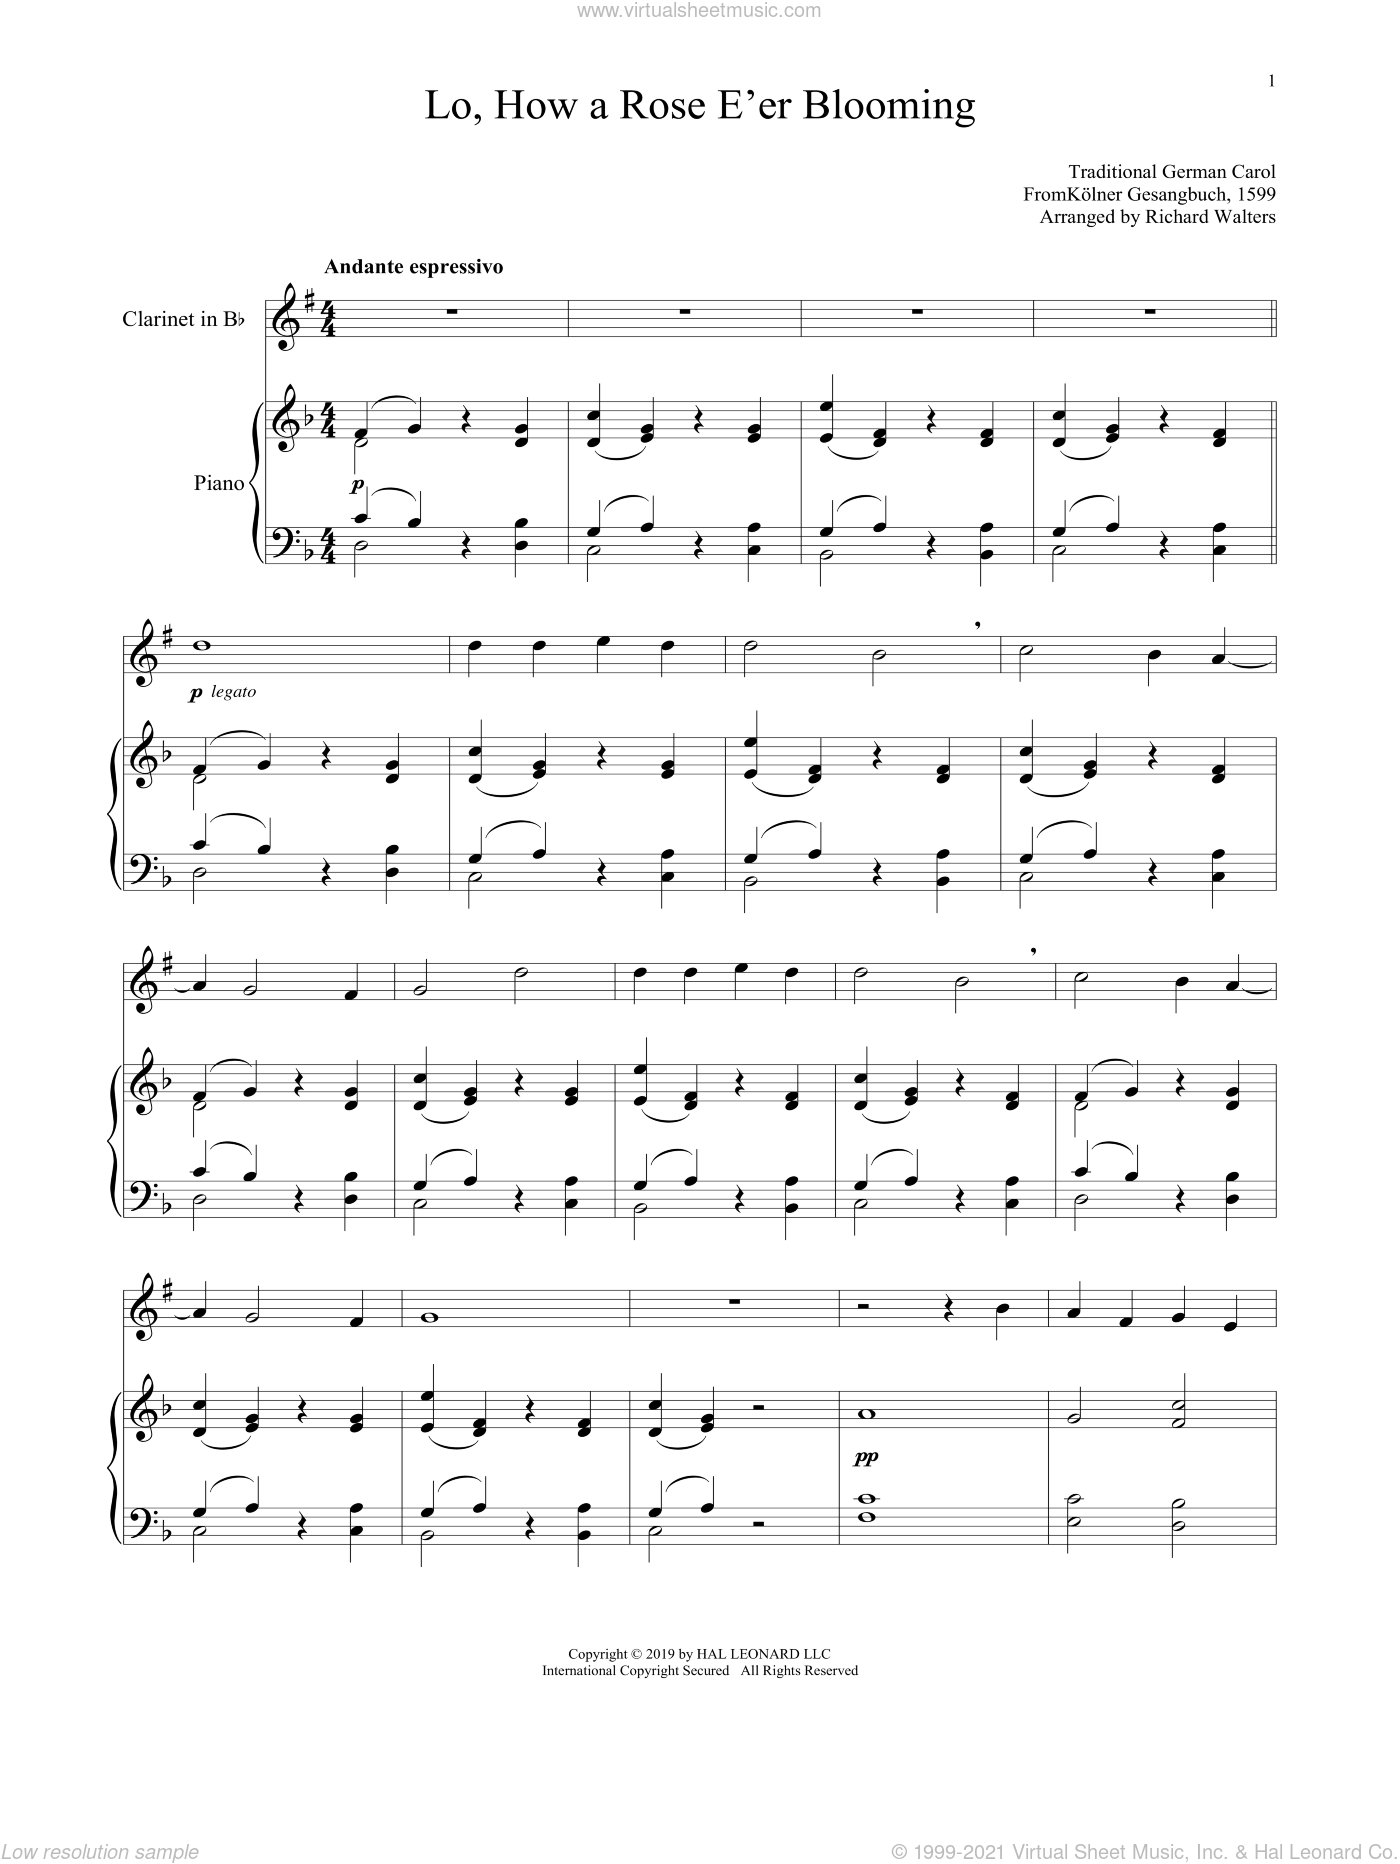 Lo, How A Rose E'er Blooming sheet music for clarinet and piano by Alte Catholische Geistliche Ki, 15th Century German Carol and Theodore Baker, intermediate skill level